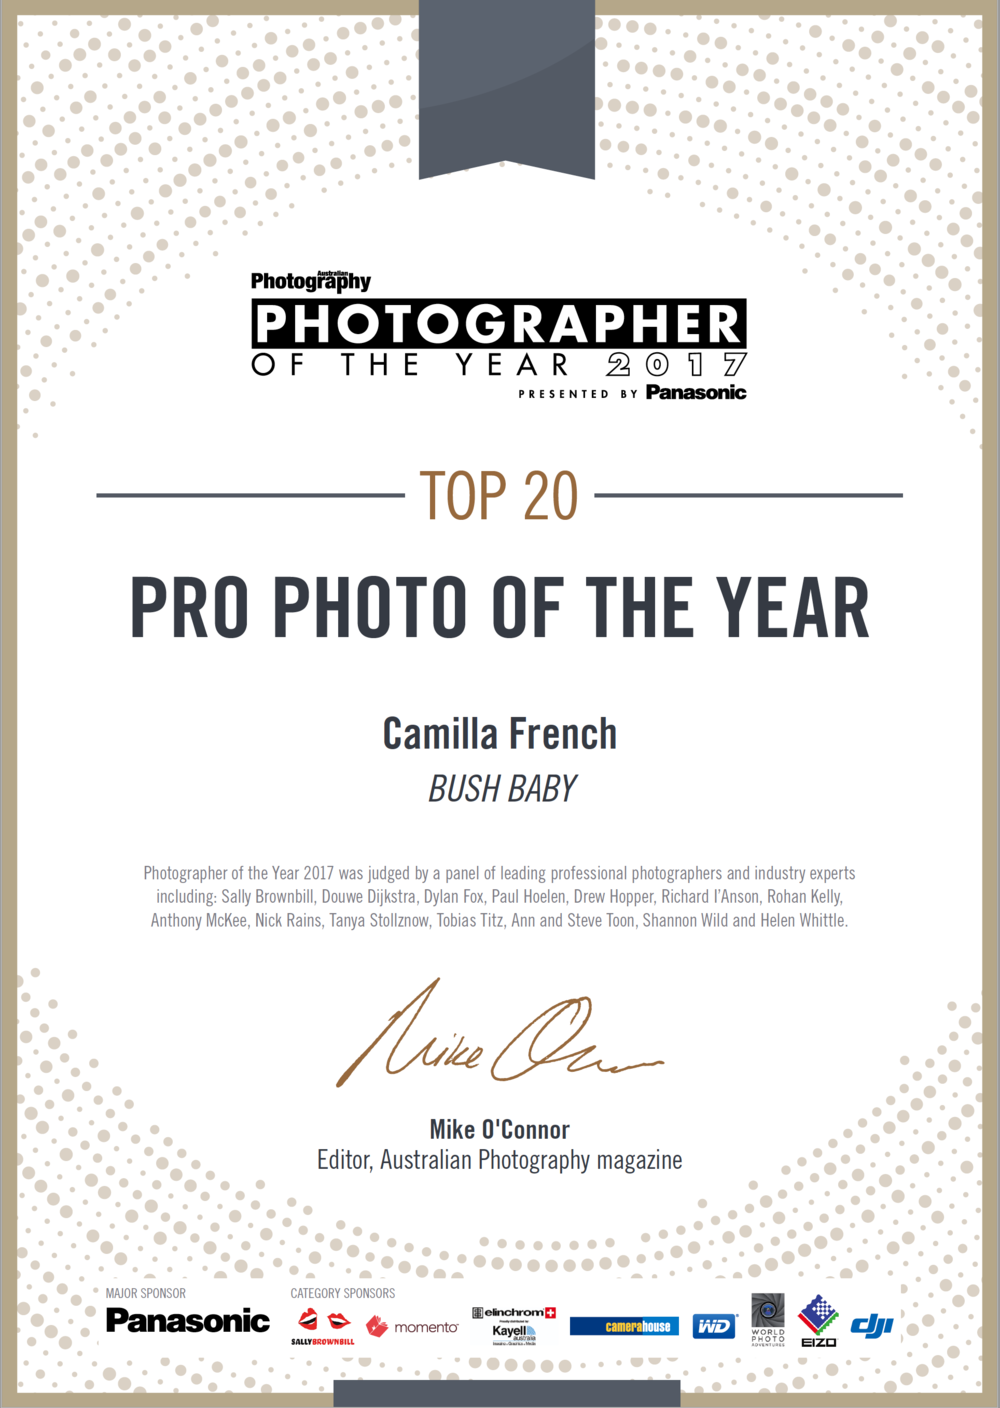 Australian Photograpy of the Year Pro Photo of the Year Top 20